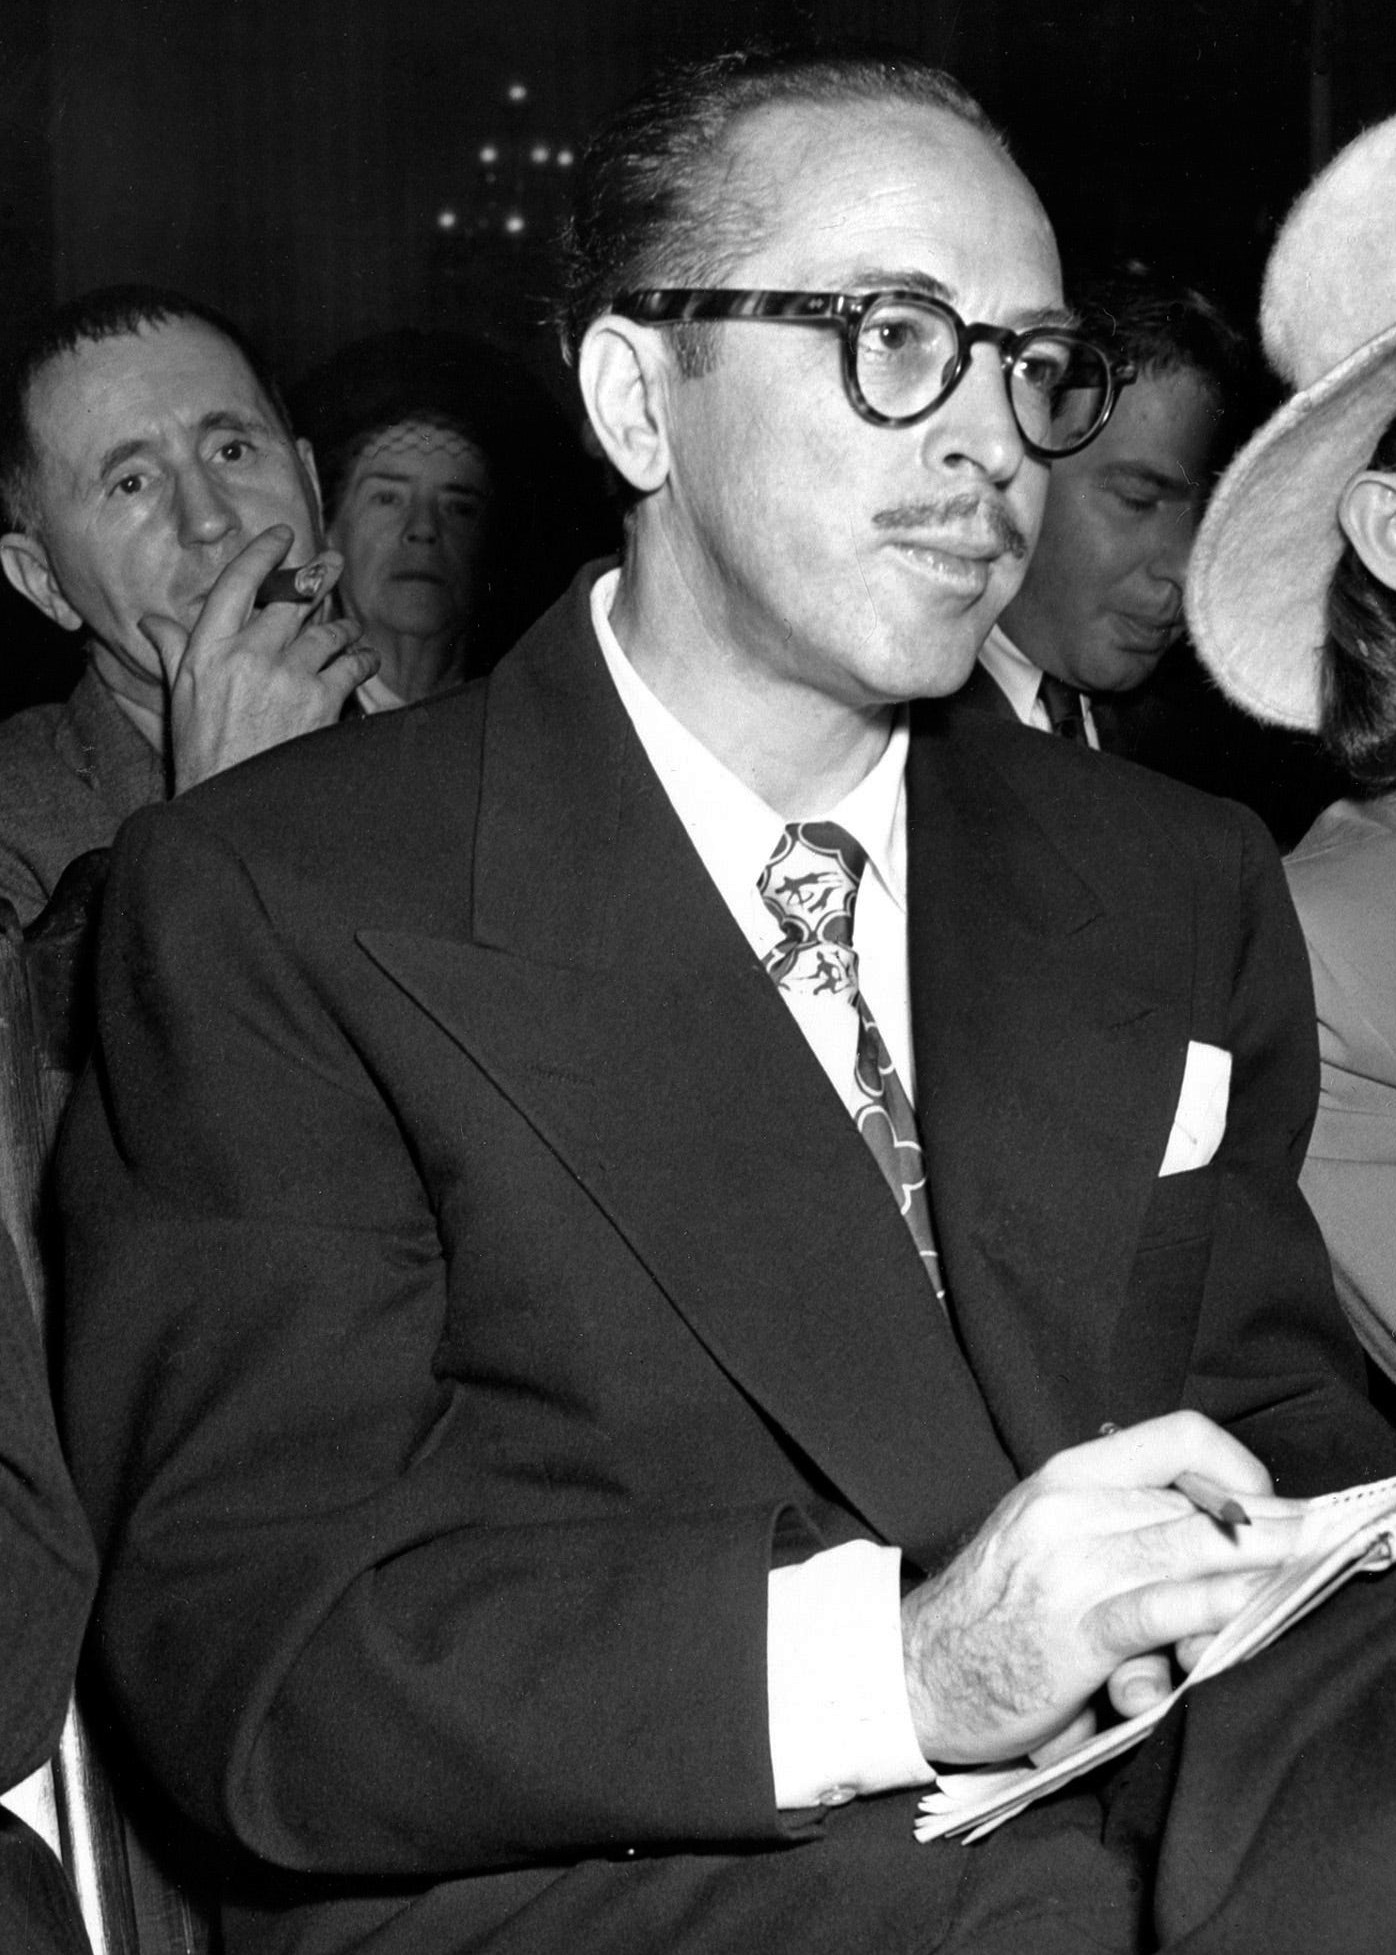 Trumbo at House Un-American Activities Committee hearings, 1947